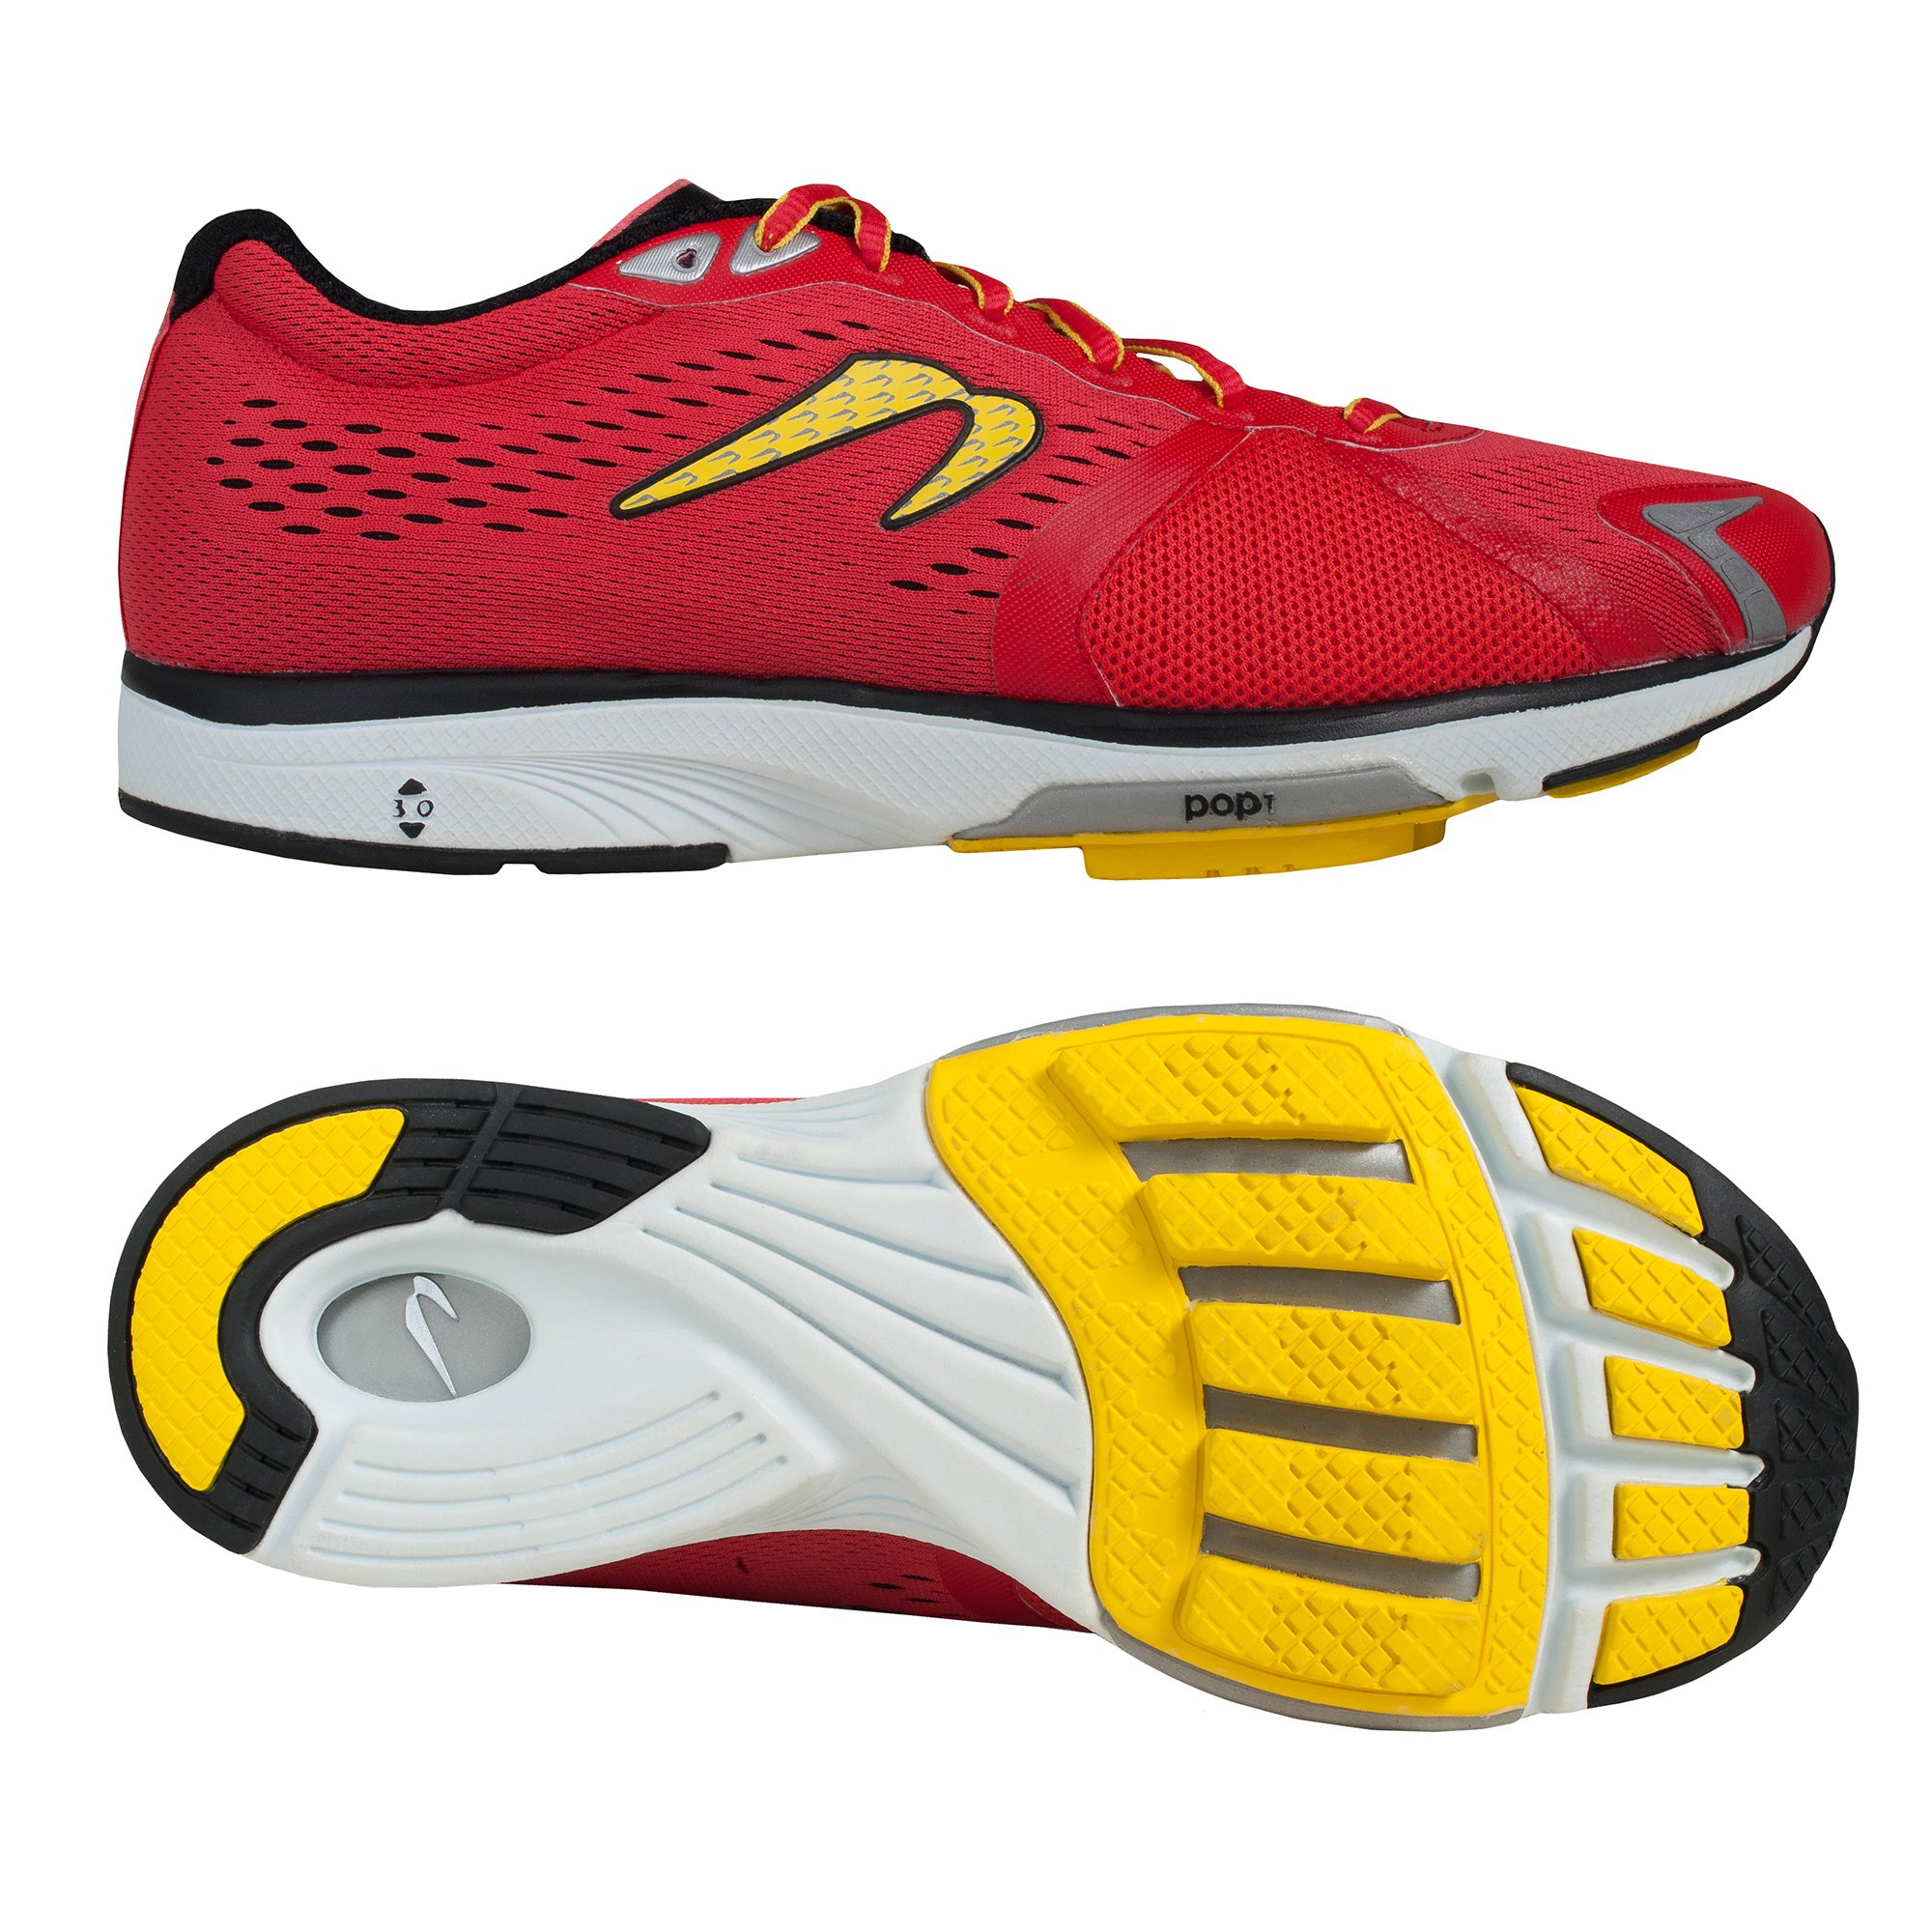 Newton Zapatilla De Running Gravity IV, Talla 9, Color Azul: Amazon.es: Deportes y aire libre